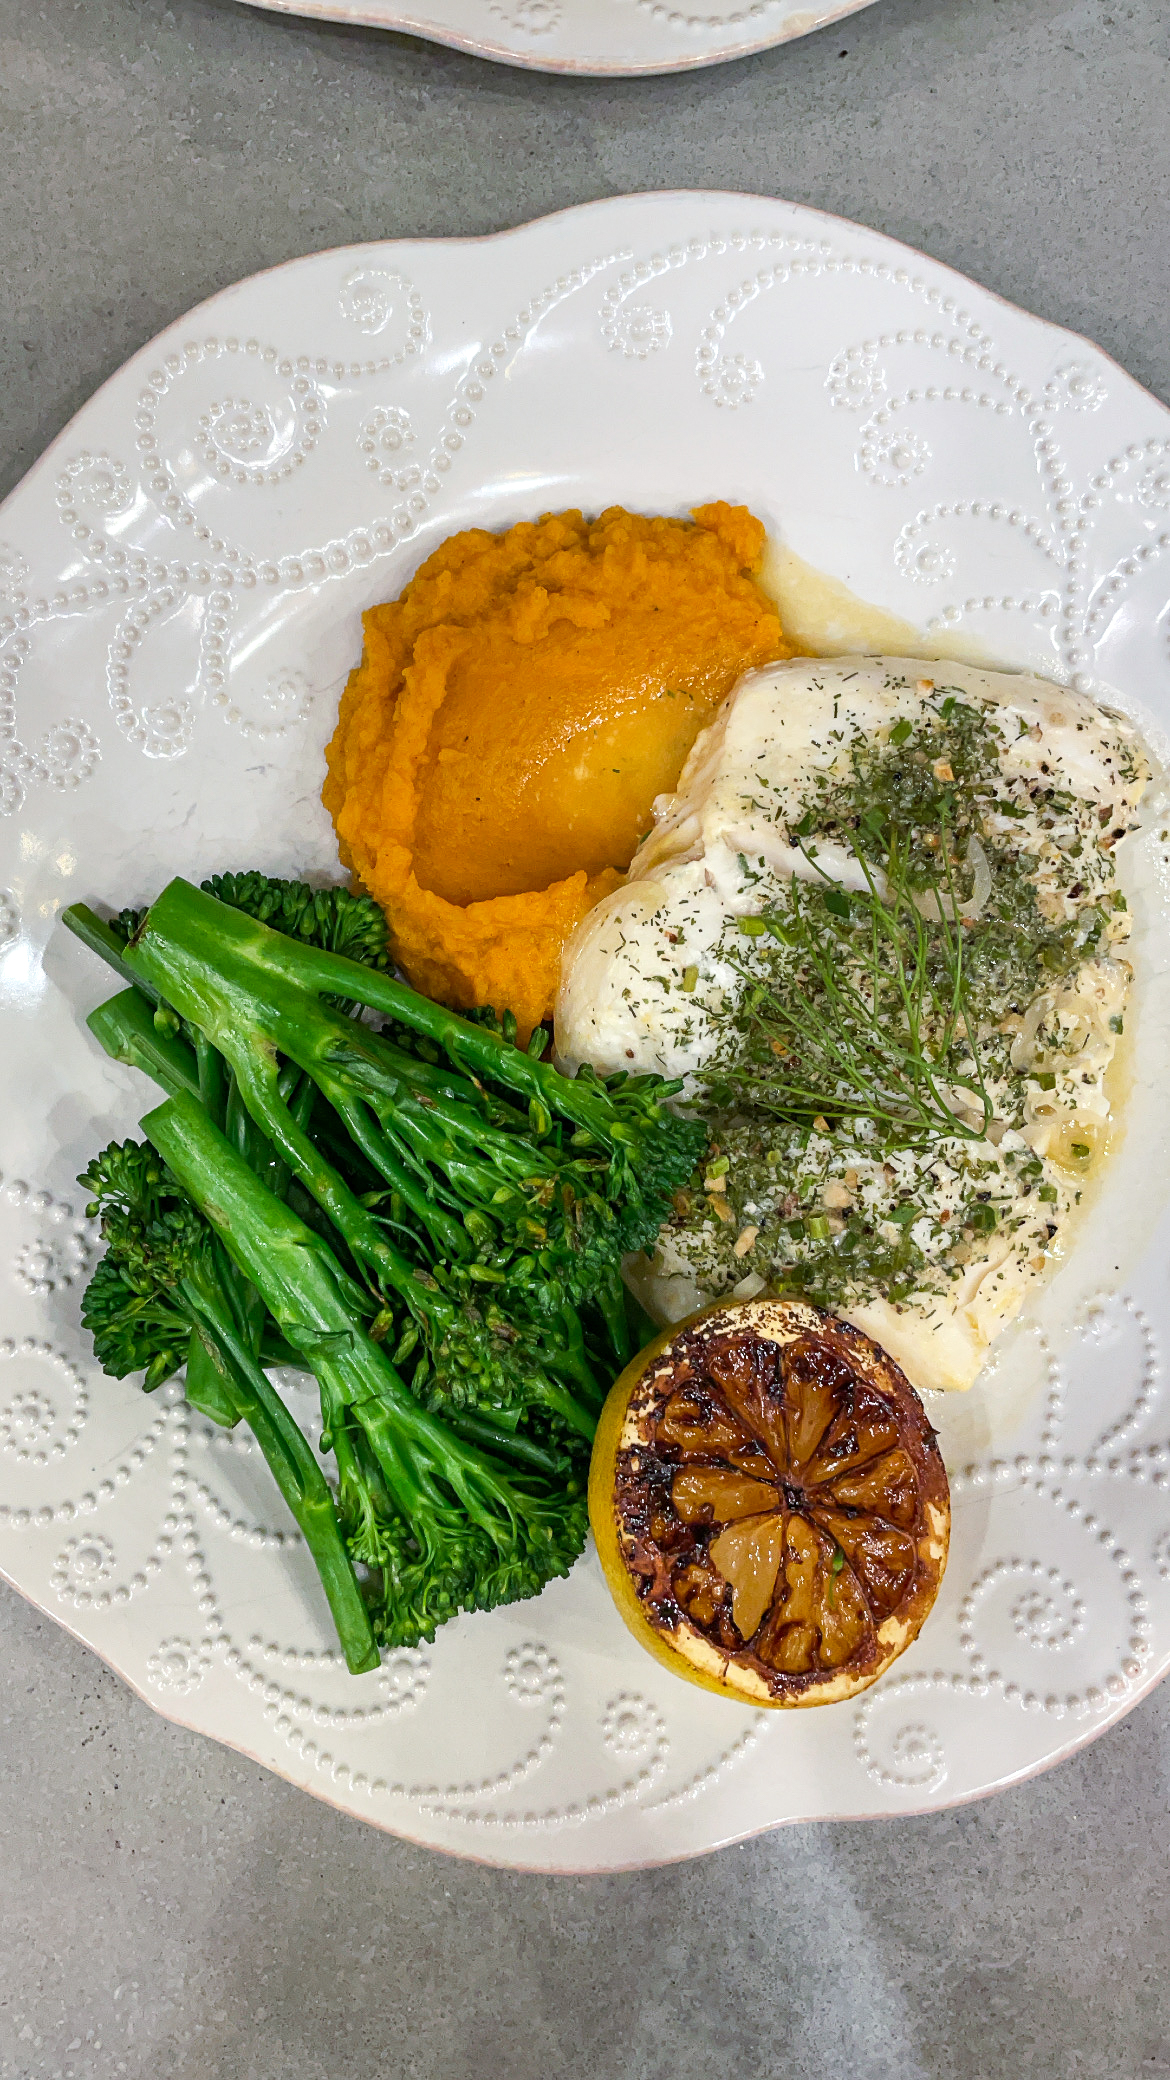 bake halibut - private boutique catering